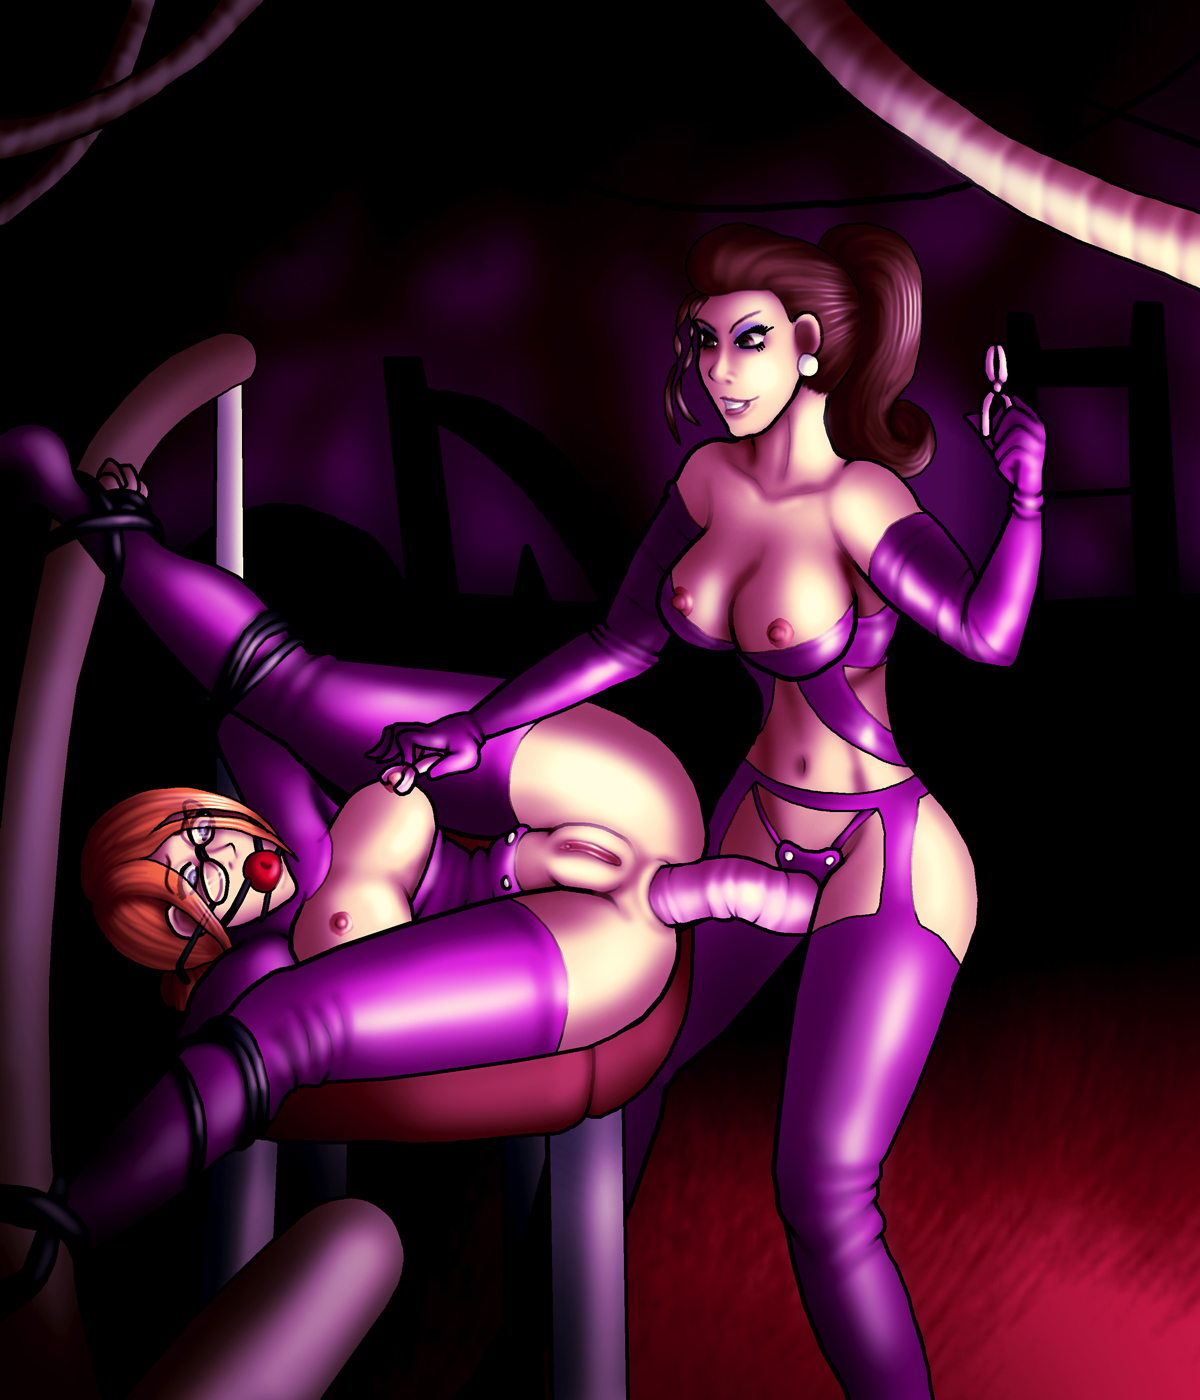 Saints row 4 asha porn picture cartoon softcore gallery